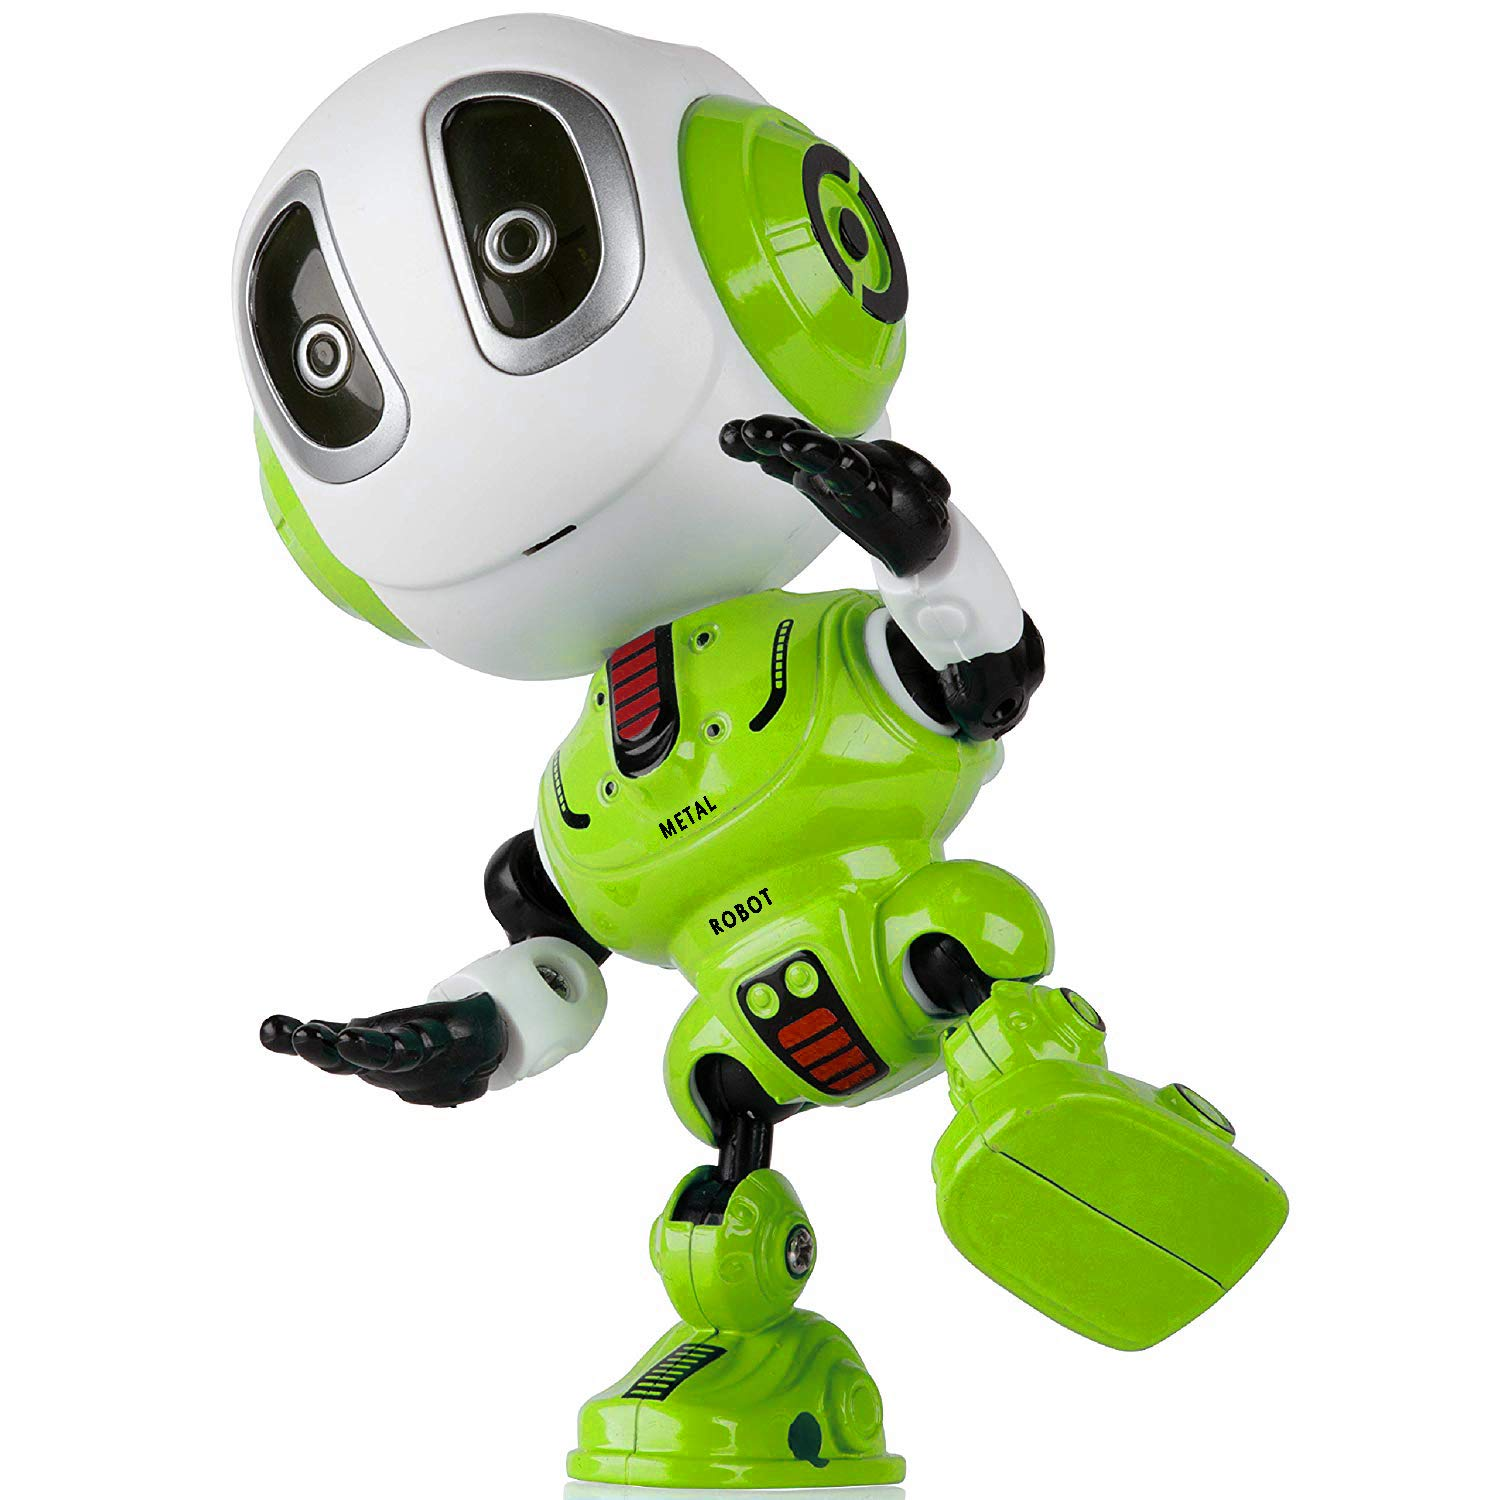 Sopu Talking Robot Toys Repeats Whatever You Say Kids Robot Toy Metal Mini Body Robot with Repeats Your Voice, Colorful Flashing Lights and Cool Sounds Robot Interactive Toy for Boys and Girls (Green)